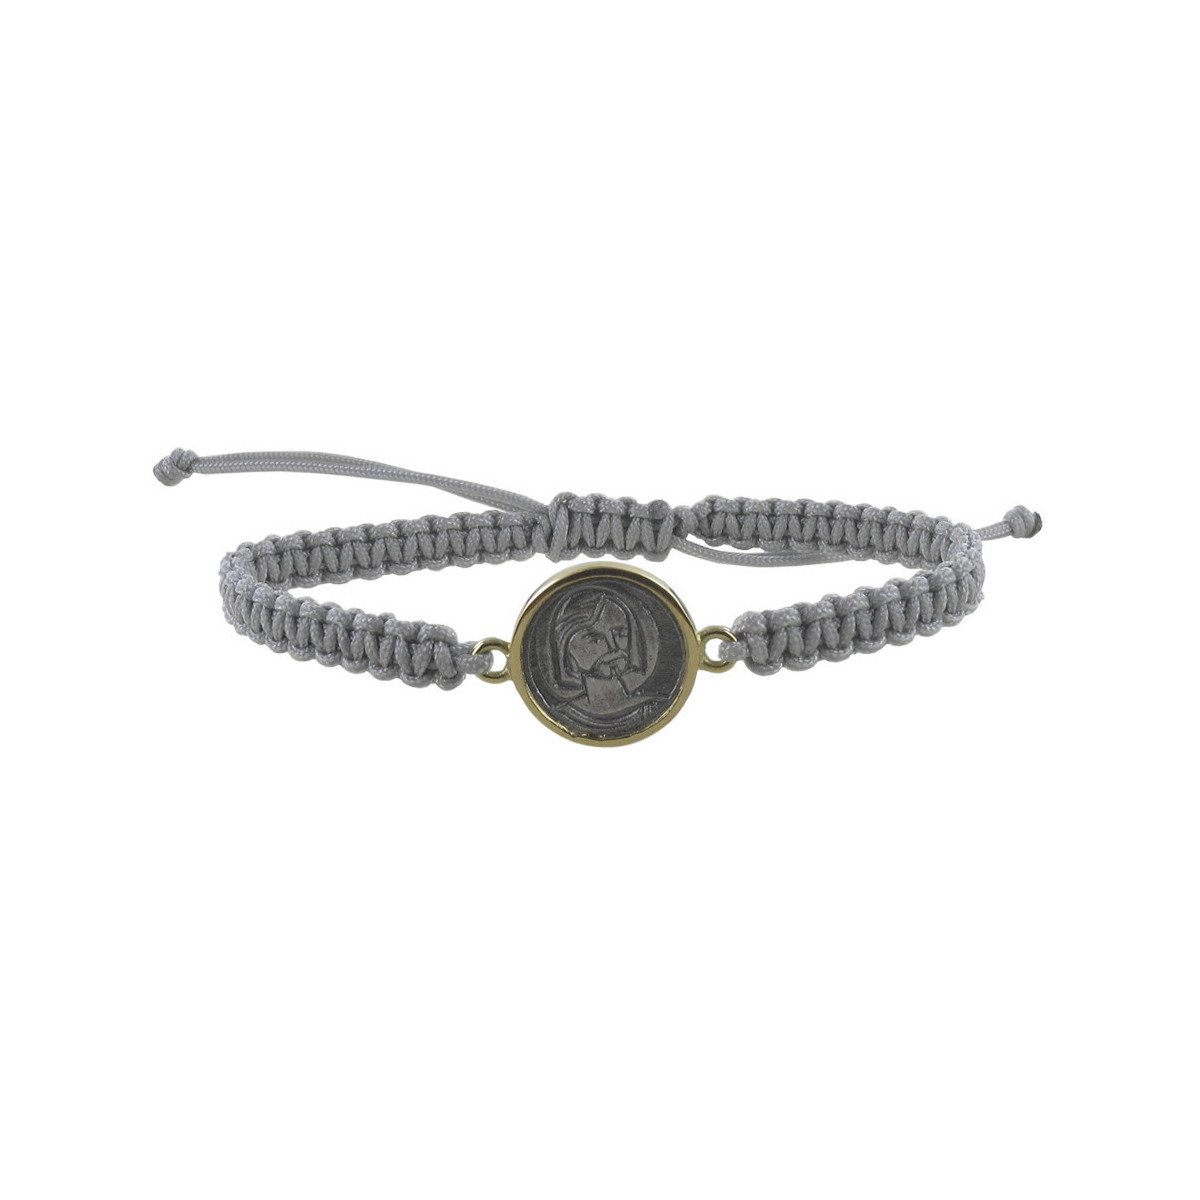 BRACELET WITH SILVER AND GOLD SCAPULAR